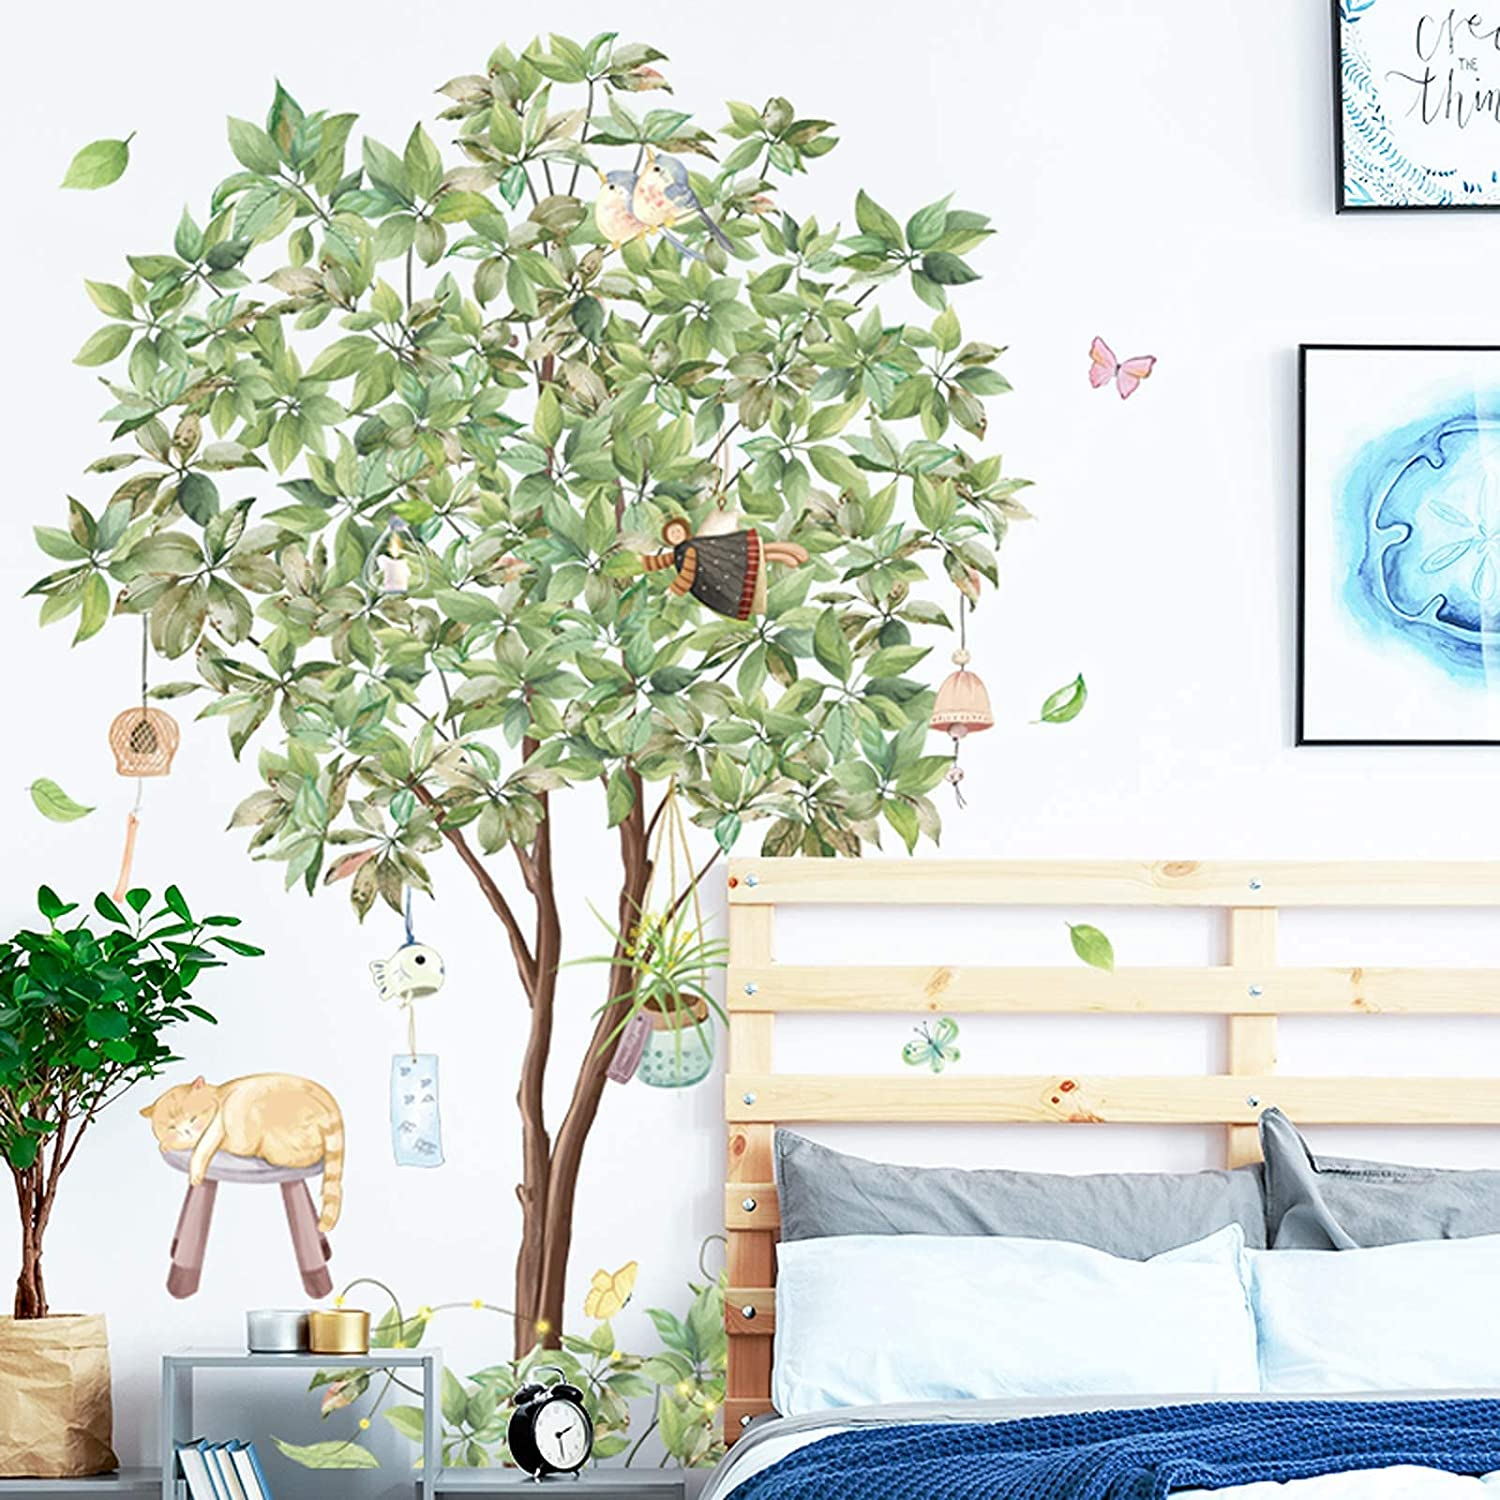 Green Tree Wall Decal Lazy Cat Wind Chime Wall Stickers, Removable Waterproof 3D Fresh Leaves Wallpaper, DIY Art Murals for Nursery Bedroom Living Room Office TV Background Decor